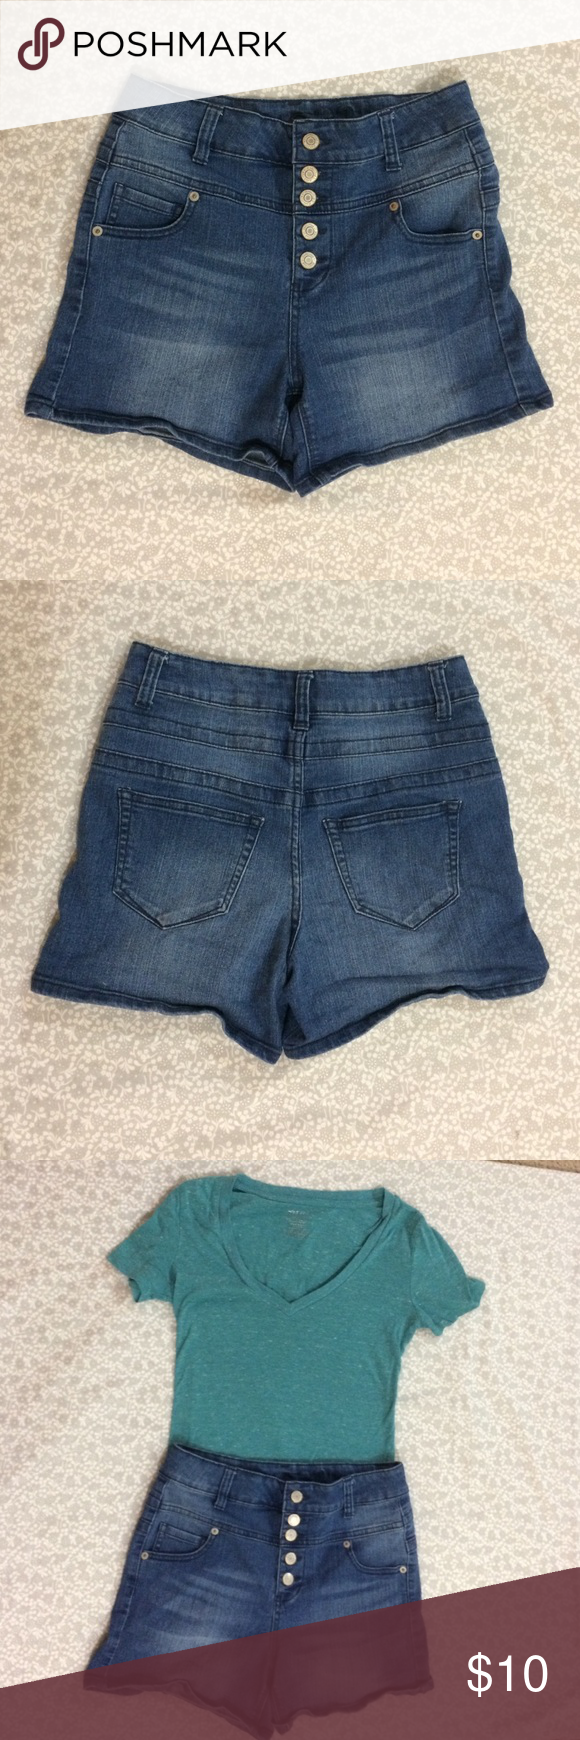 Rue 21 shorts. Size 5/6 Rue 21 high waisted jean shorts. Worn only a few times. Like new. Size 5/6 Rue 21 Shorts Jean Shorts